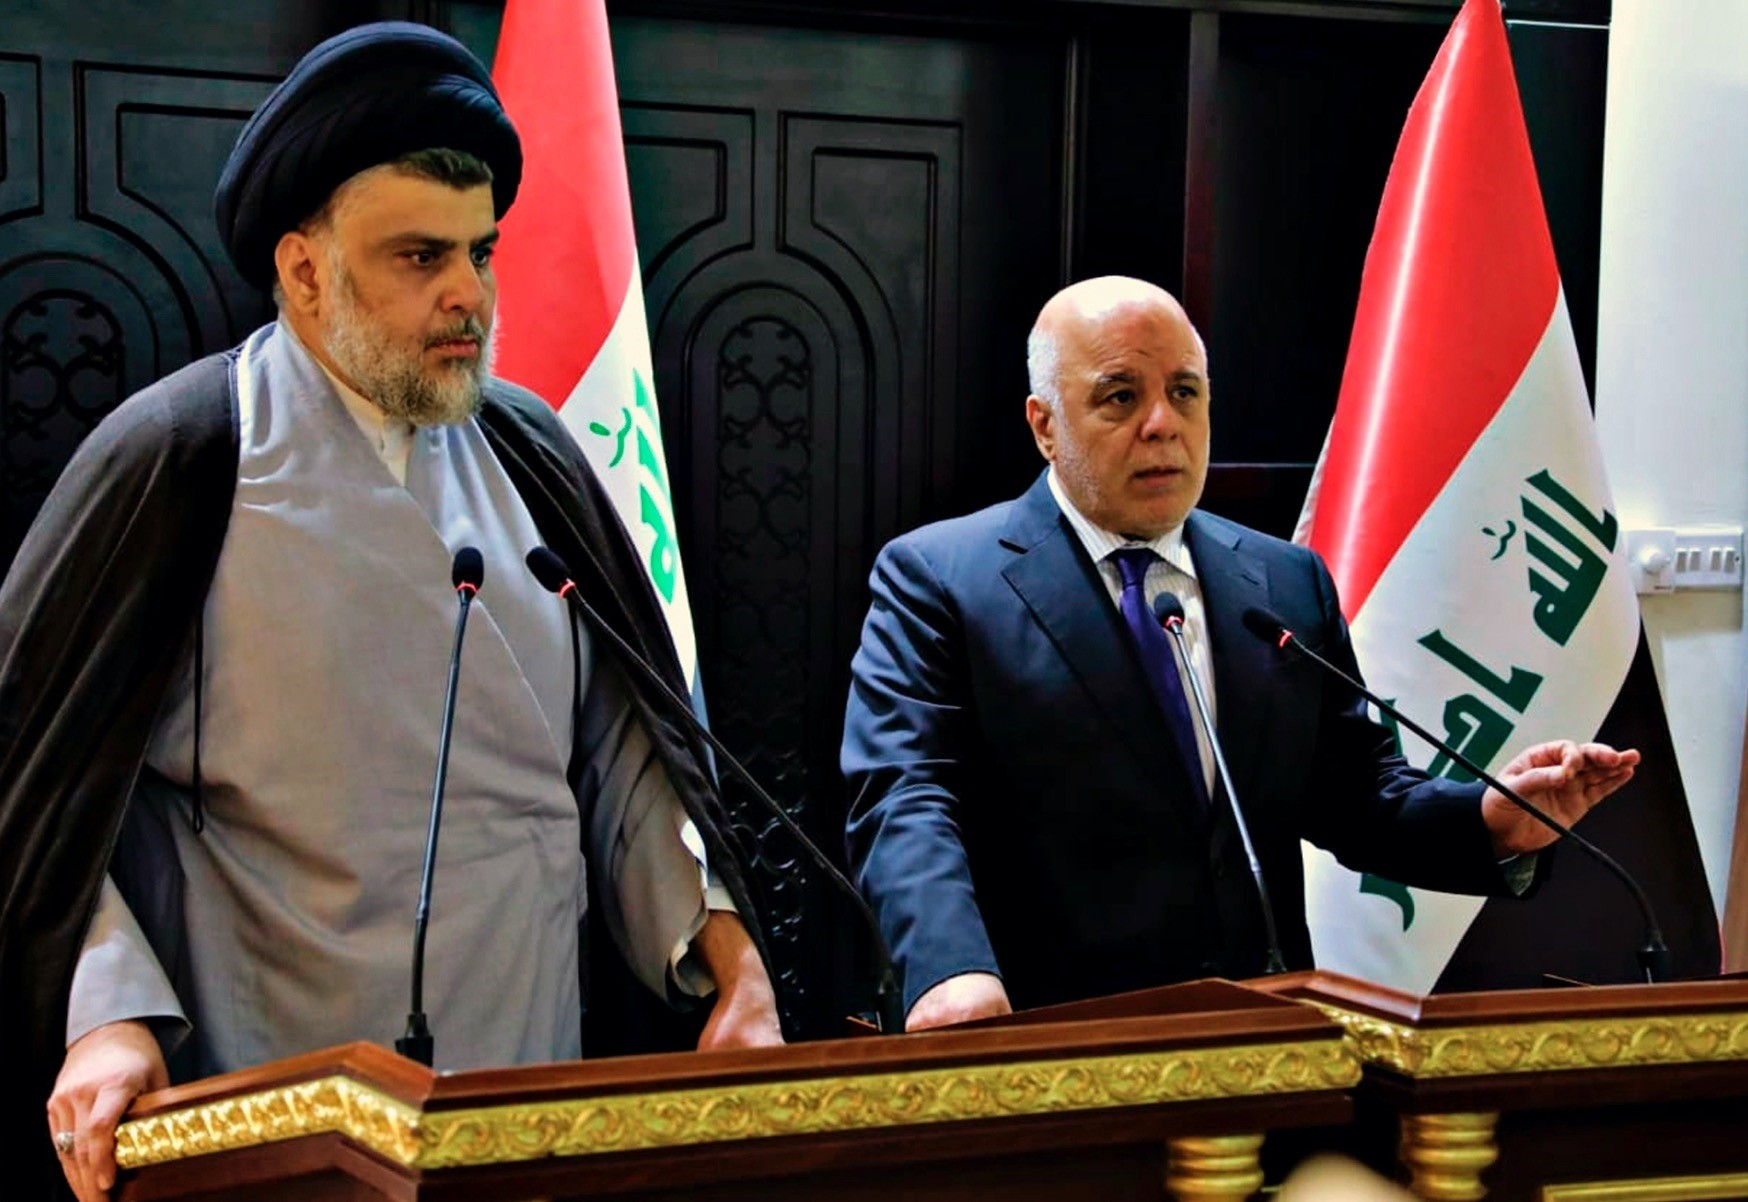 Shiite cleric Muqtada al-Sadr (L) and Iraqi Prime Minister Haider al-Abadi hold a press conference in the heavily fortified Green Zone in Baghdad, May 20.